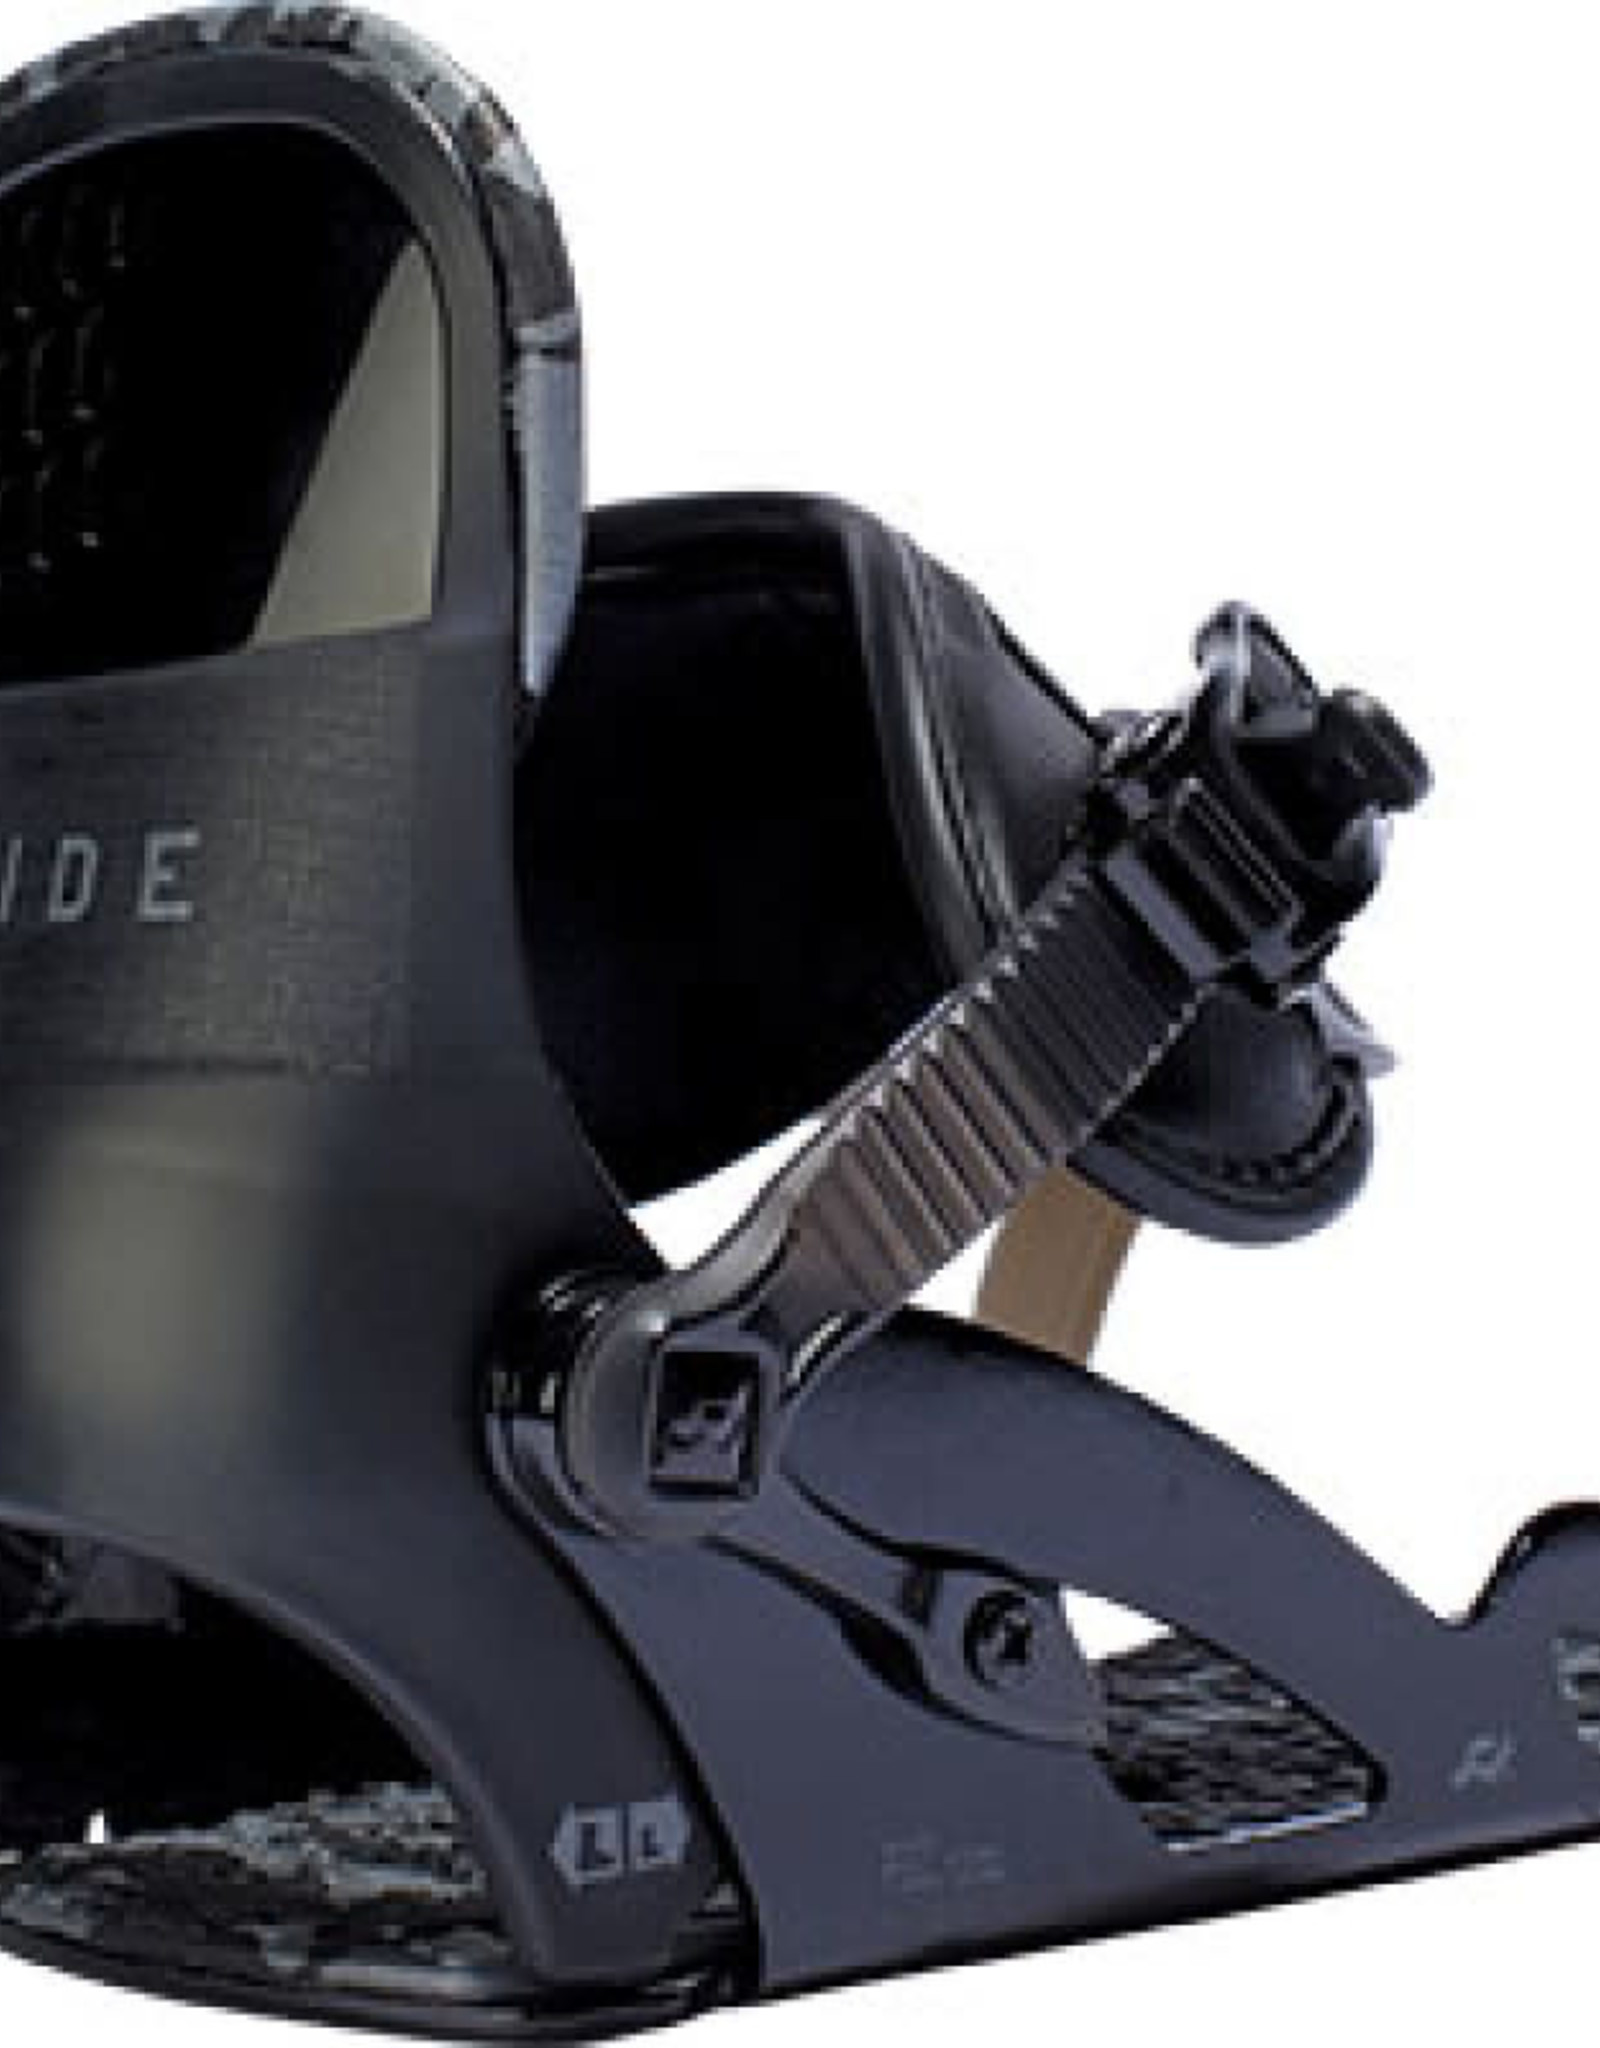 RIDE Ride Micro Jr Snowboard Binding